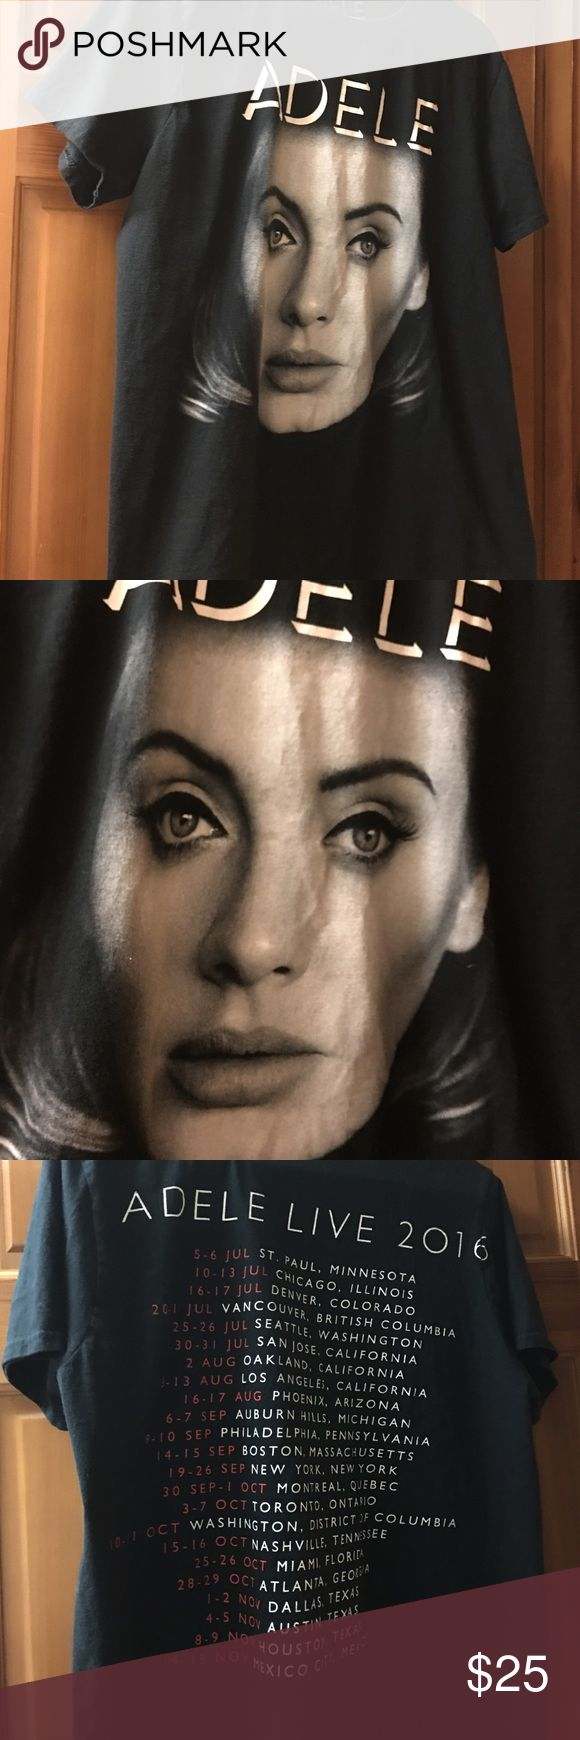 Adele 2016 tour tshirt Brand new Adele 2016 Tour Tshirt. Purchased from Seattle WA event. t shirt was washed, but never worn. Size L. Smoke free home. This is authentic not a fake shirt Adele Tops Tees - Short Sleeve